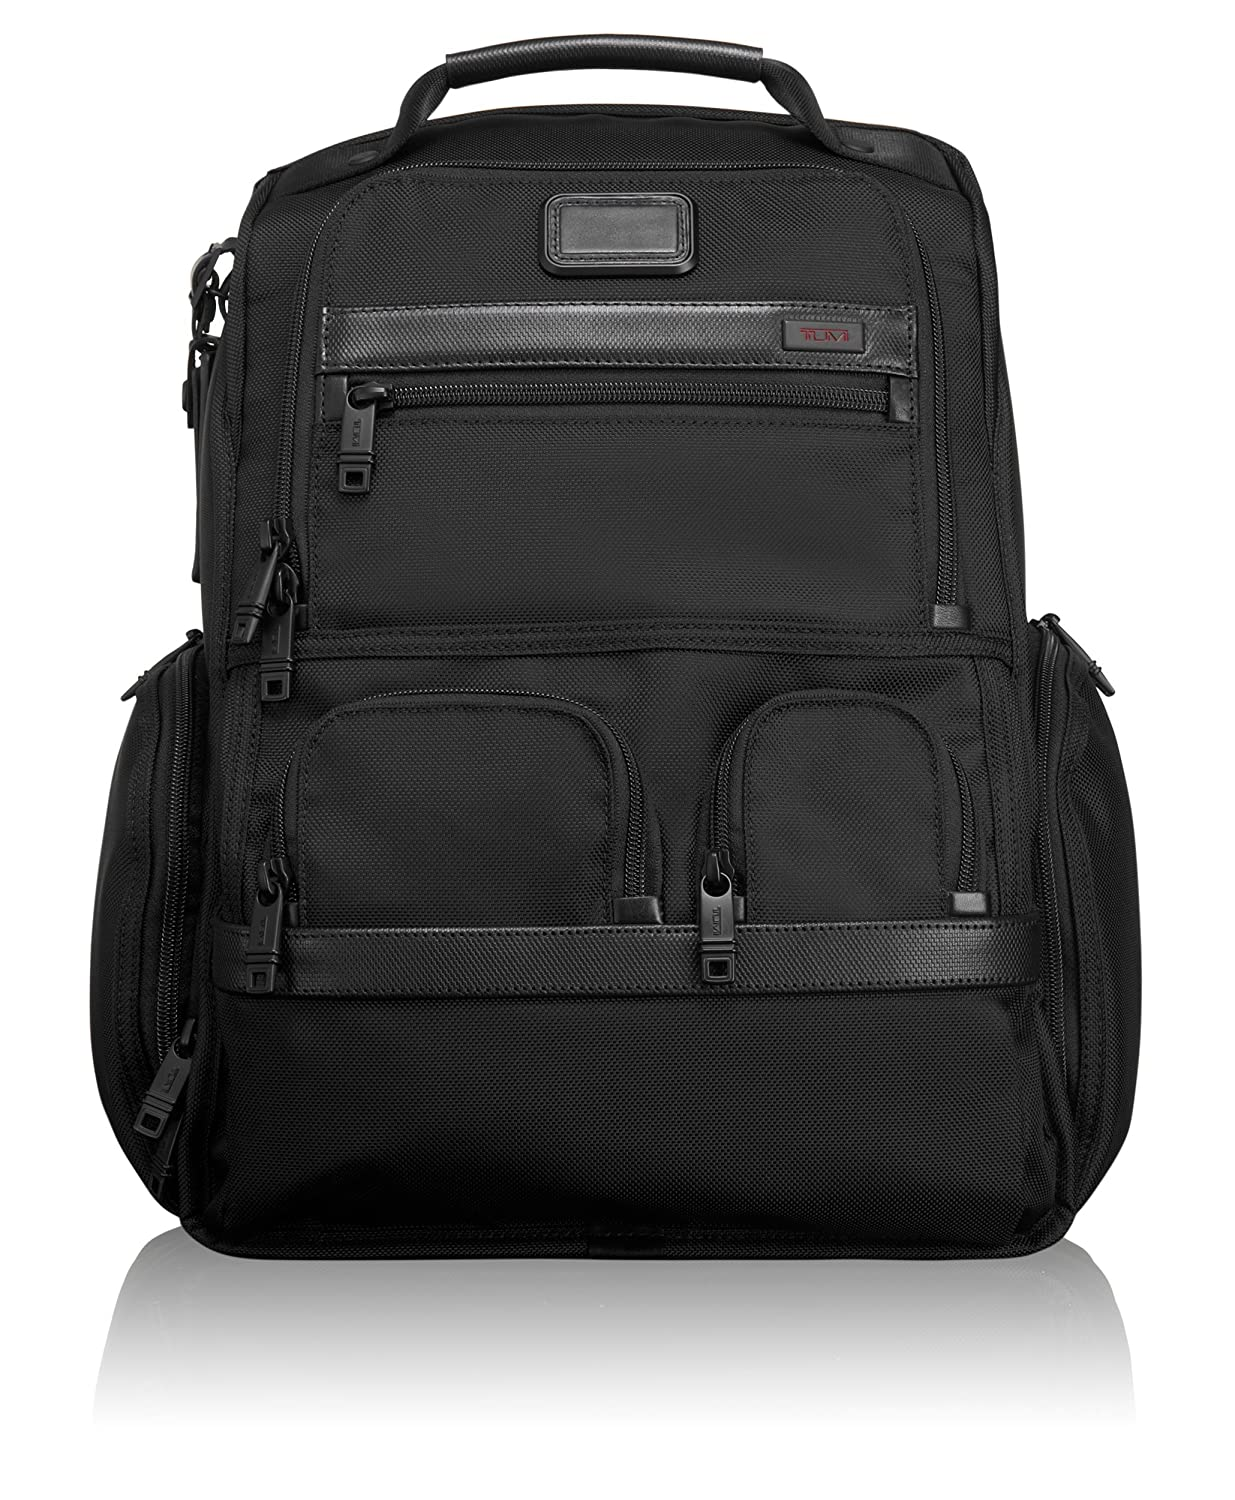 tumi-laptop-backpack-review